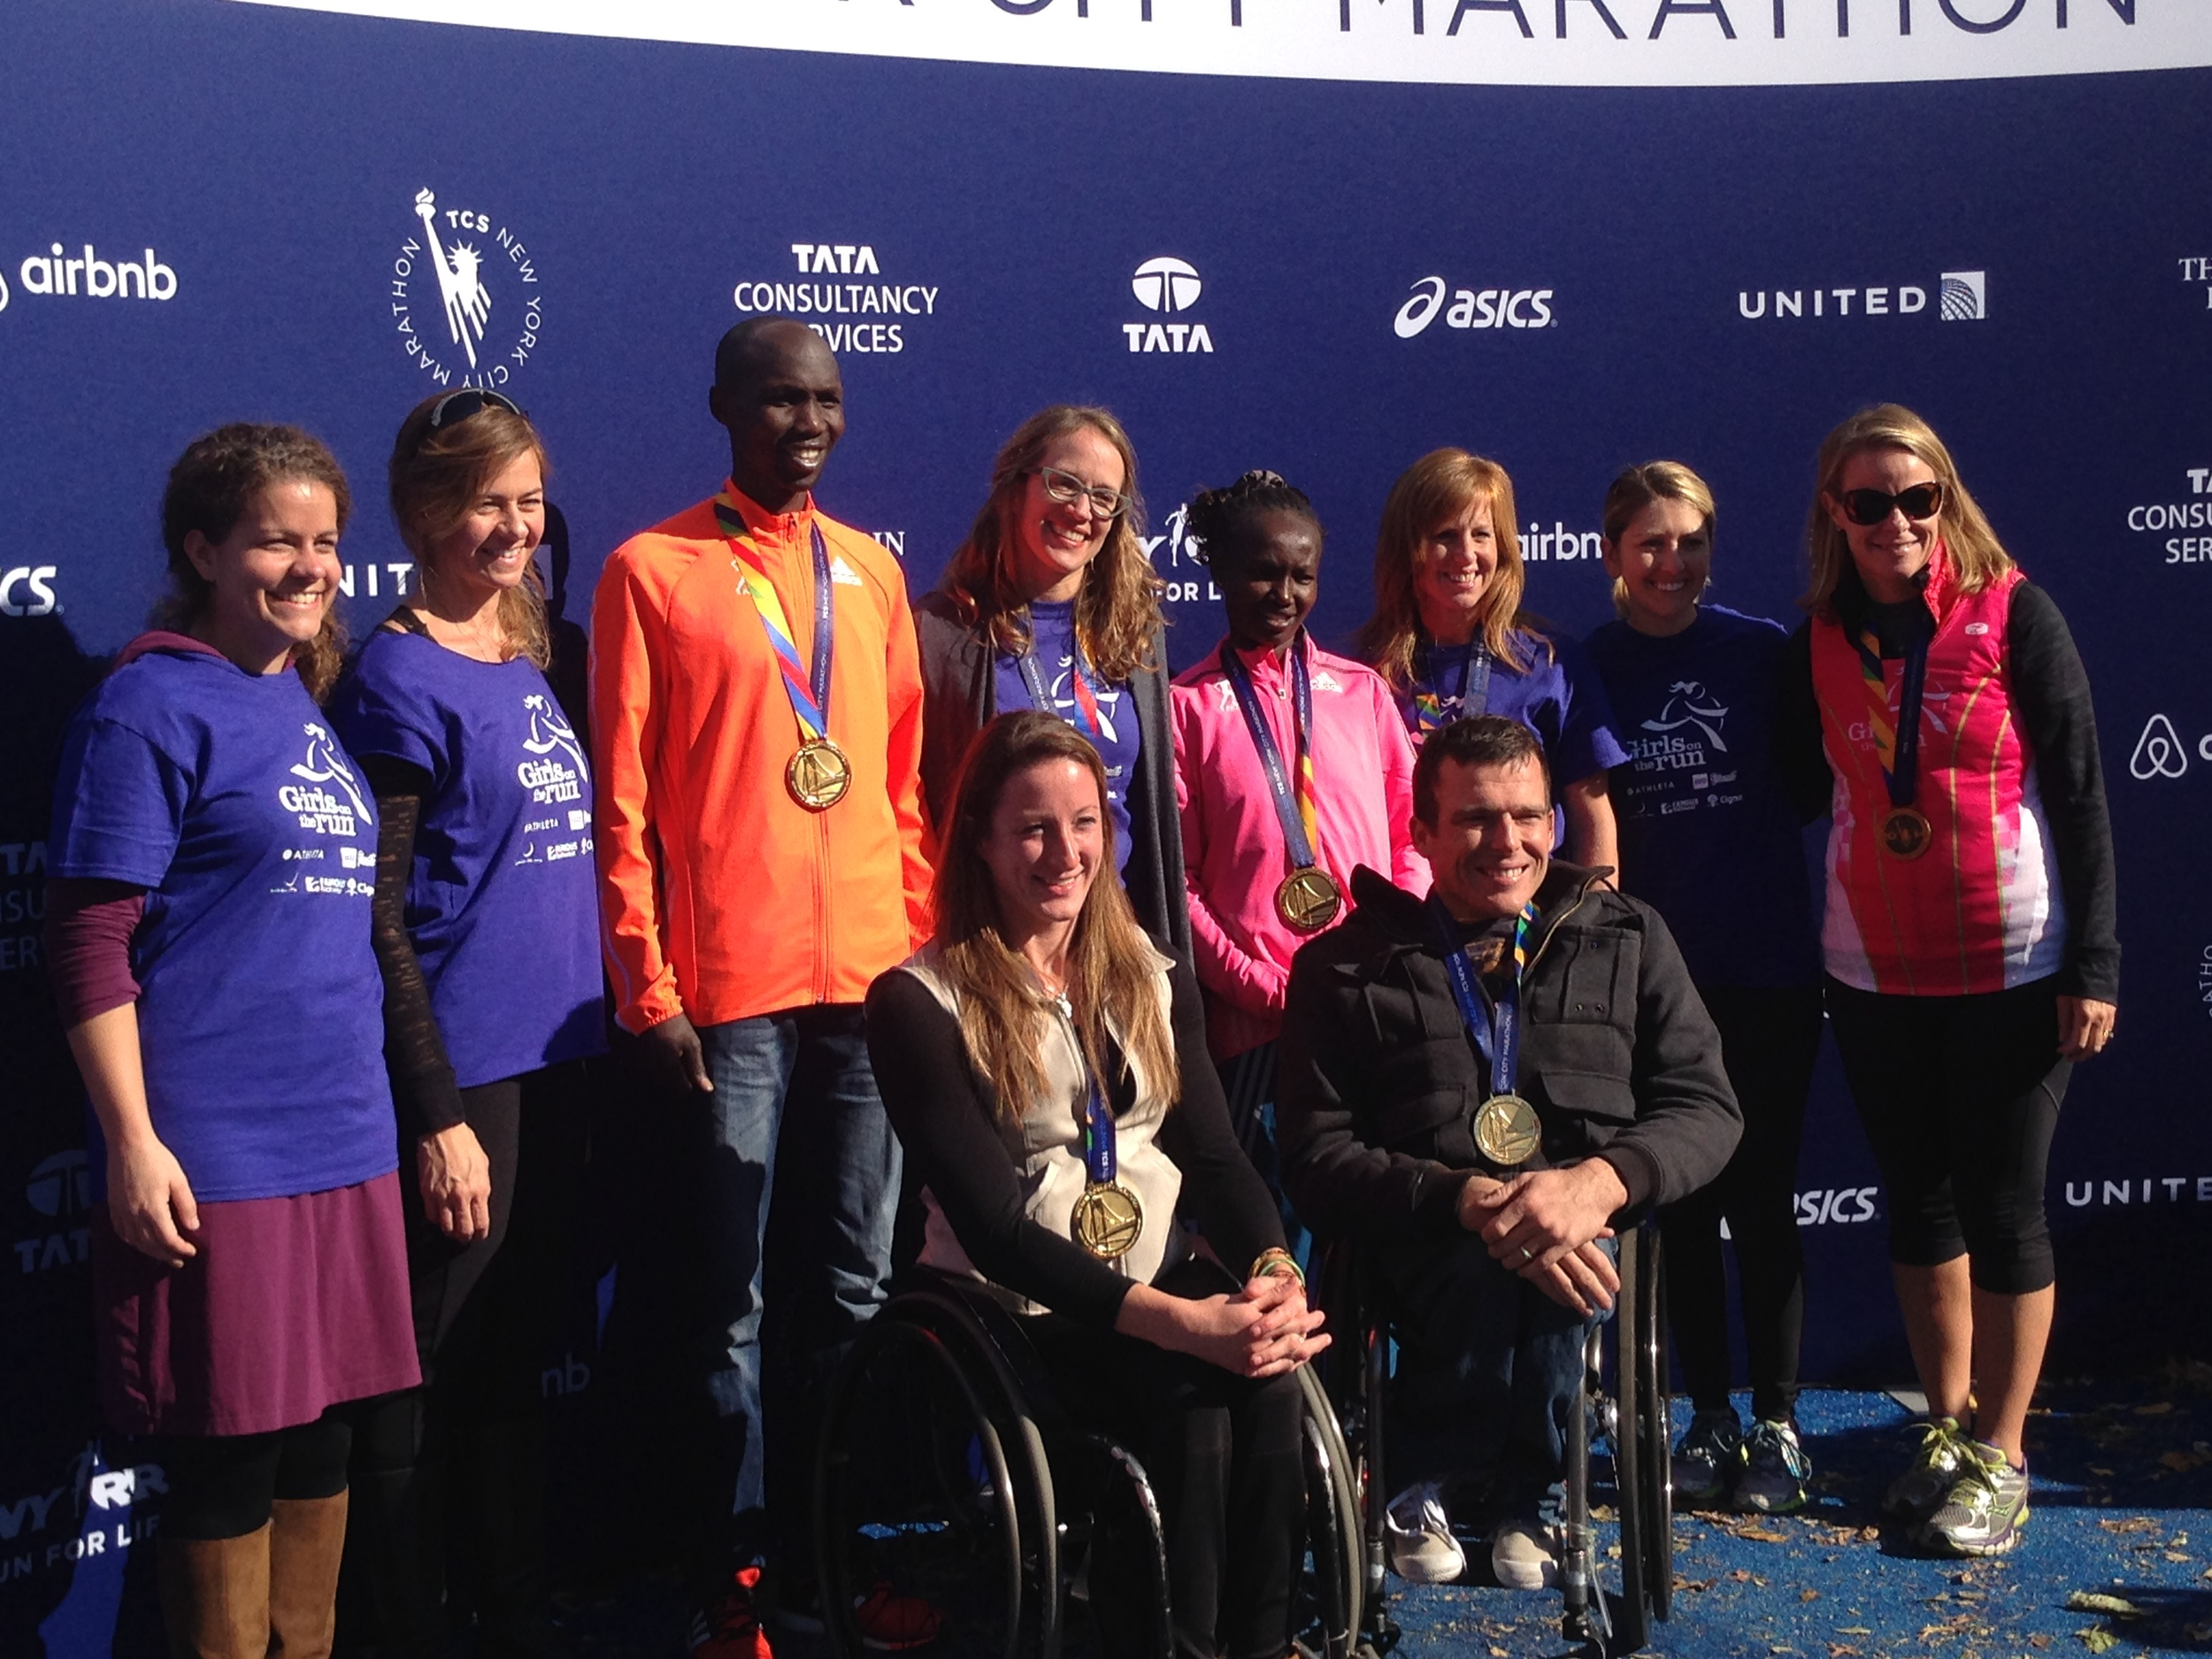 Girls on the Run NYC celebrates with the 2014 NYC Marathon Winners and our very own winner, SoleMate Katherine Slingluff - the one millionth finisher!  Seen here: Allison Hauser, Executive Director GIrls on the Run NYC; Stacy Lockhart, Coach; Wilson Kipsang, 2014 Men's NYC Marathon Winner, Katherine Slingluff, Millionth Finisher & Girls on the Run NYC SoleMate; Mary Keitany, 2014 Women's NYC Marathon Winner; Lara Mish, Girls on the Run Chesapeake Council Director; Gloria Mullervey, Girls on the Run NYC SoleMate; Tatyana McFadden, 2014 Women's NYC Marathon Wheelchair Division Winner; Kurt Fearnley, 2014 Men's NYC Marathon Wheelchair Division Winner